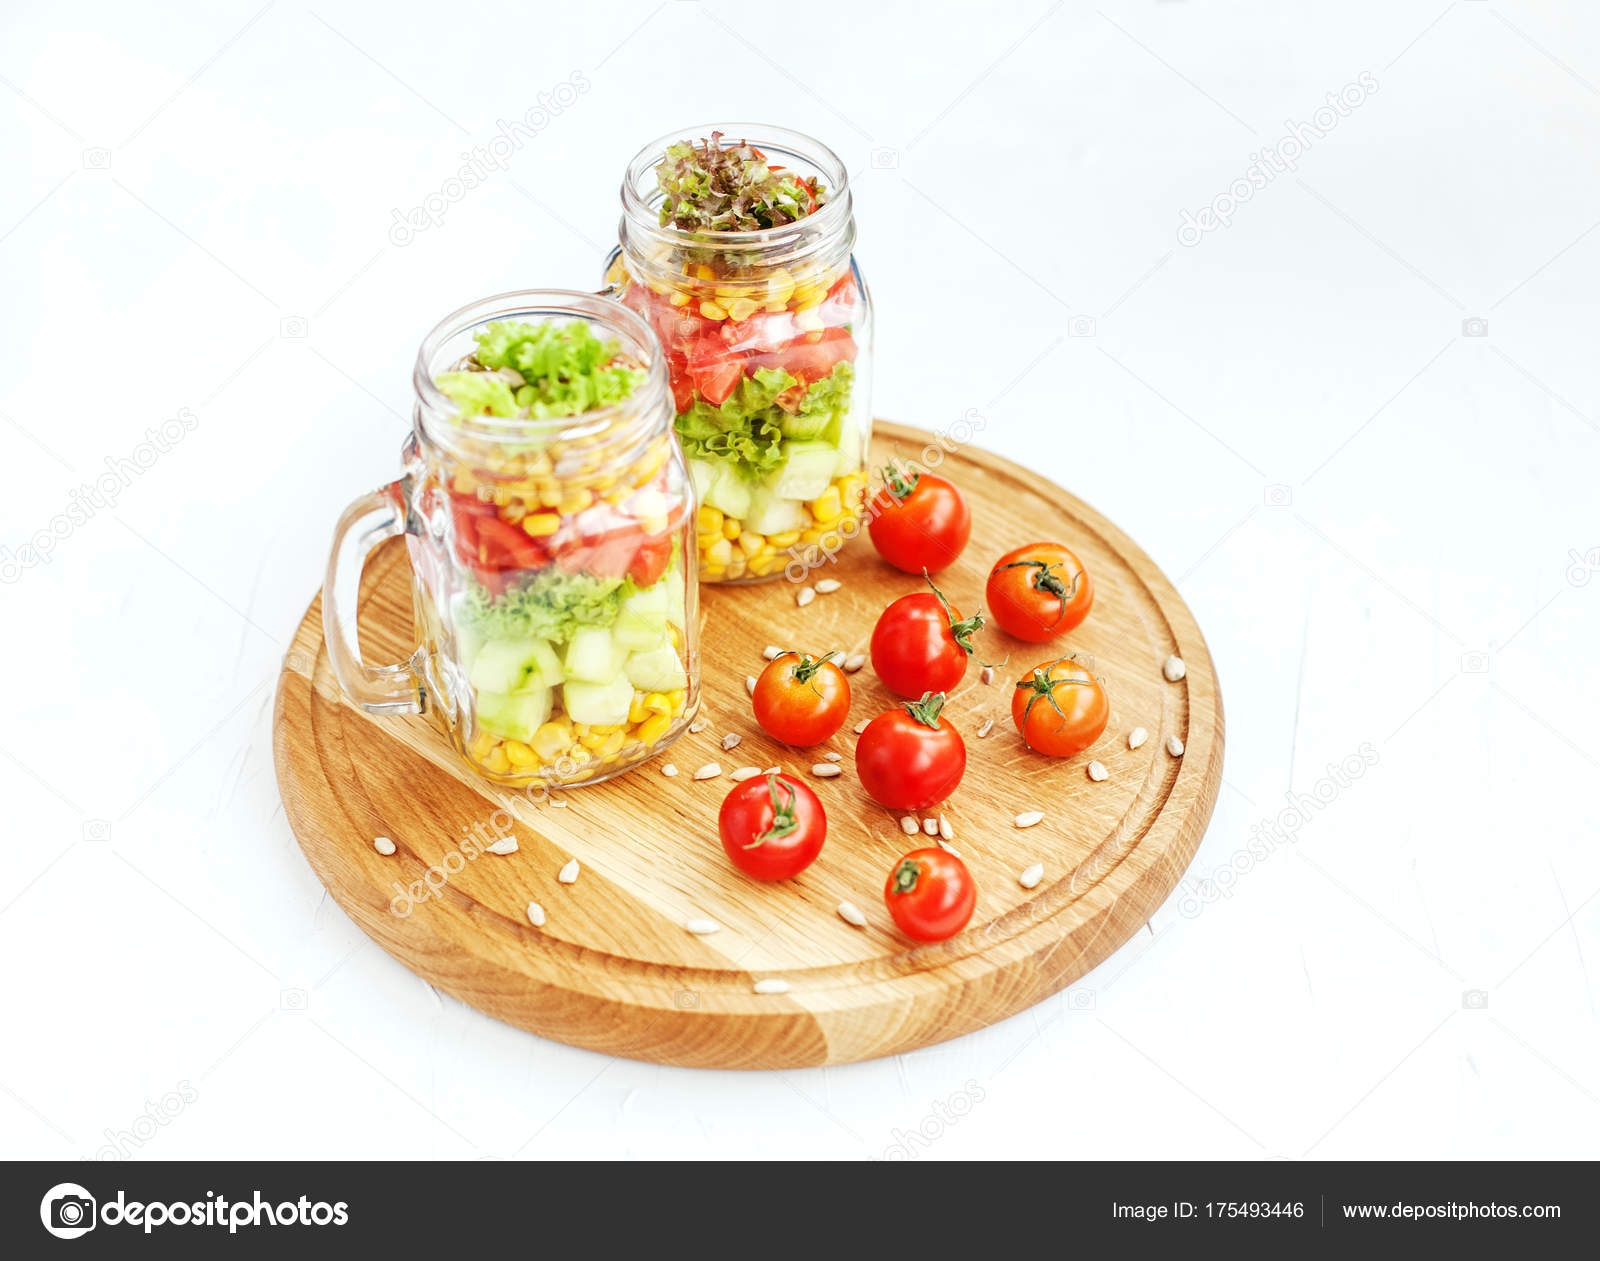 Vegetable salad with cucumbers, tomatoes and corn  Healthy